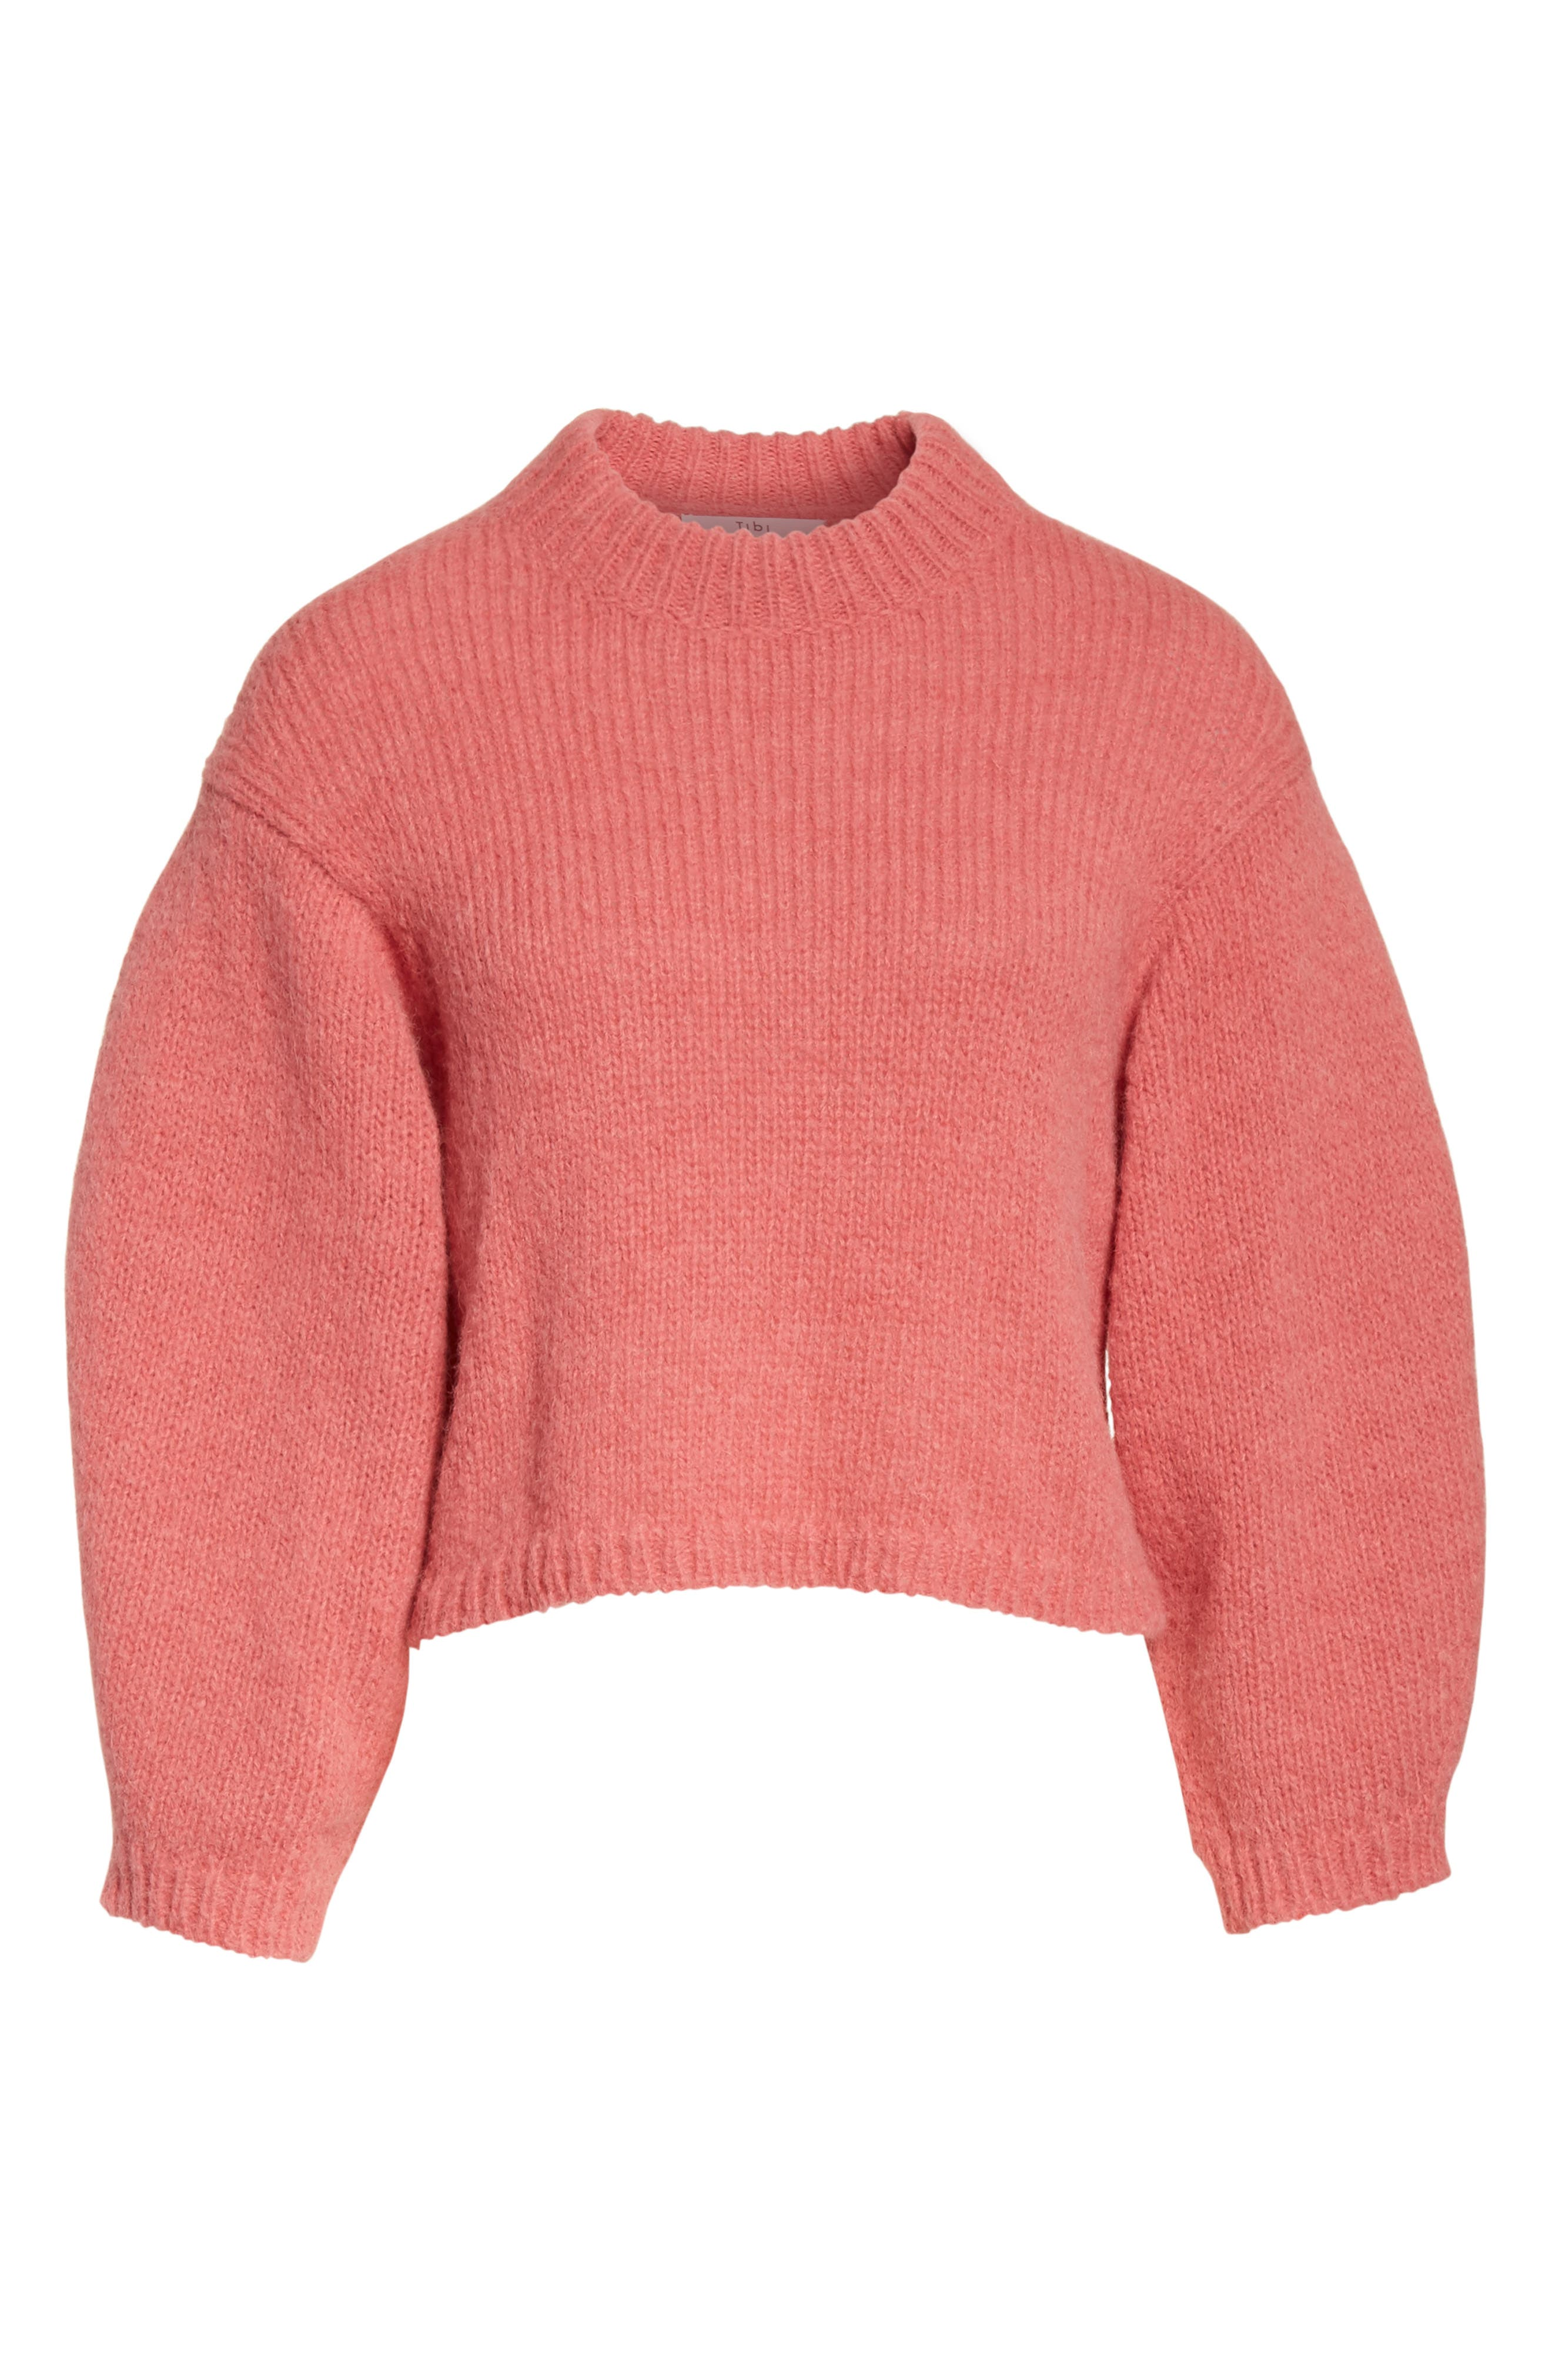 Cozette Cropped Pullover,                             Alternate thumbnail 6, color,                             695